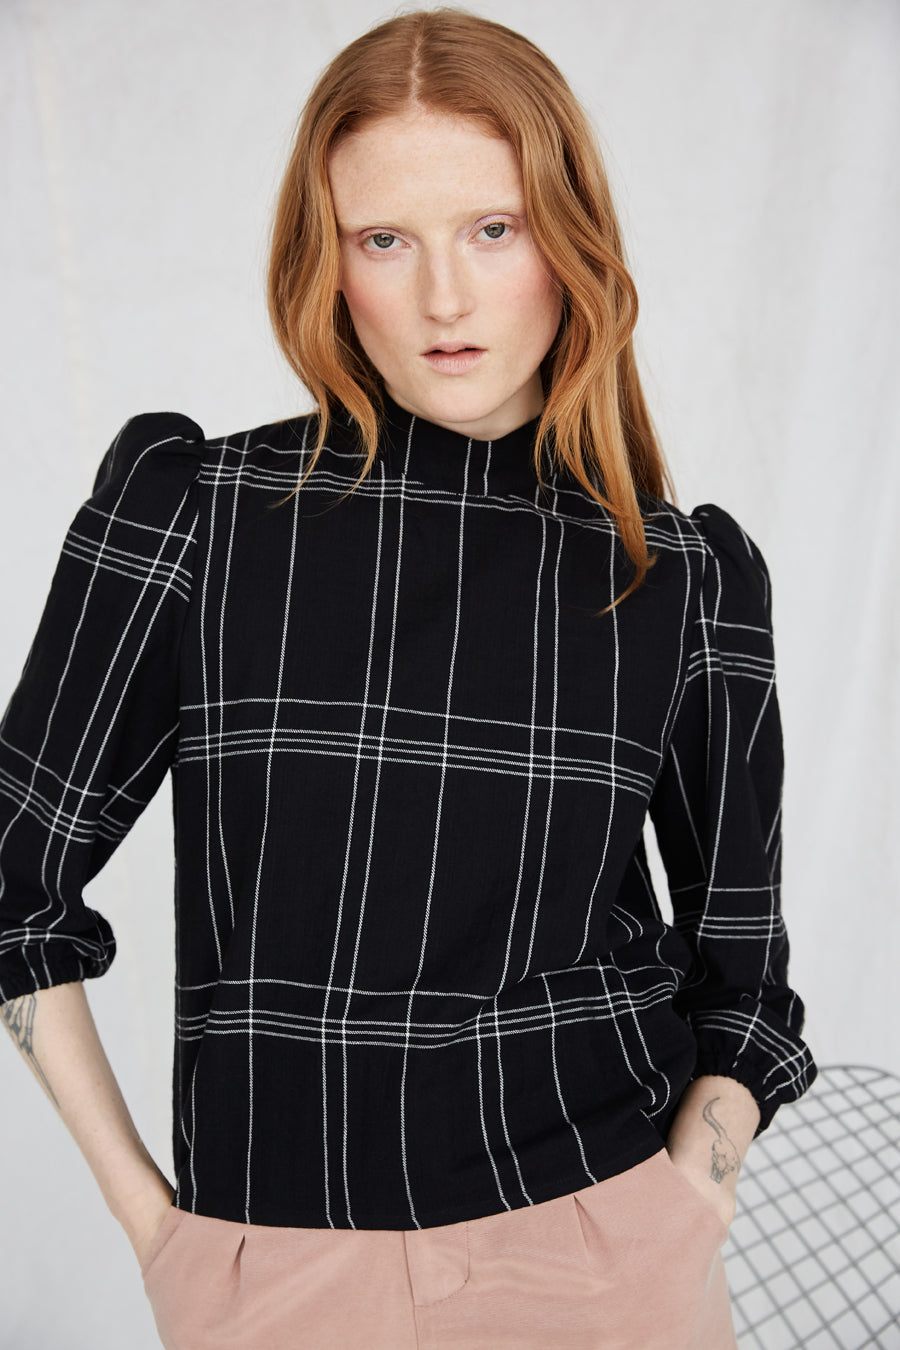 Eve Gravel Lost City Top in Black/White Plaid with mock neck and puffed sleeves